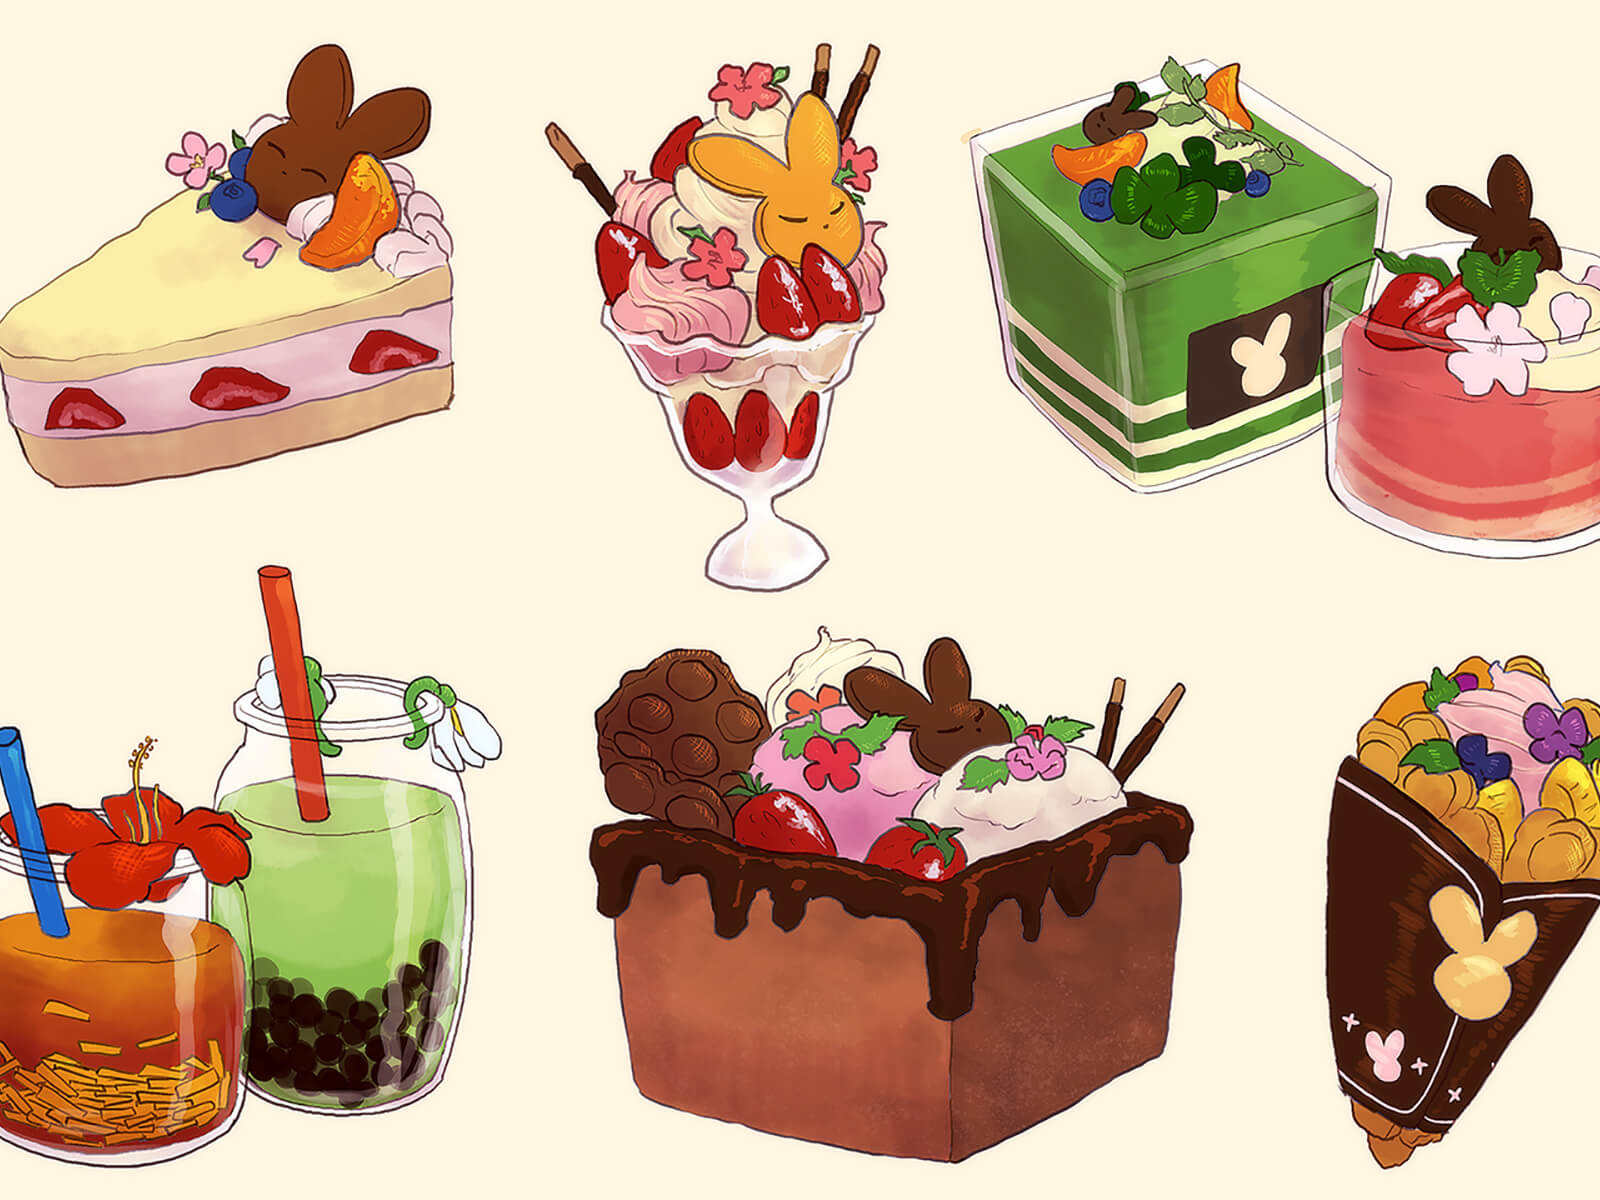 Many colorful drinks and desserts